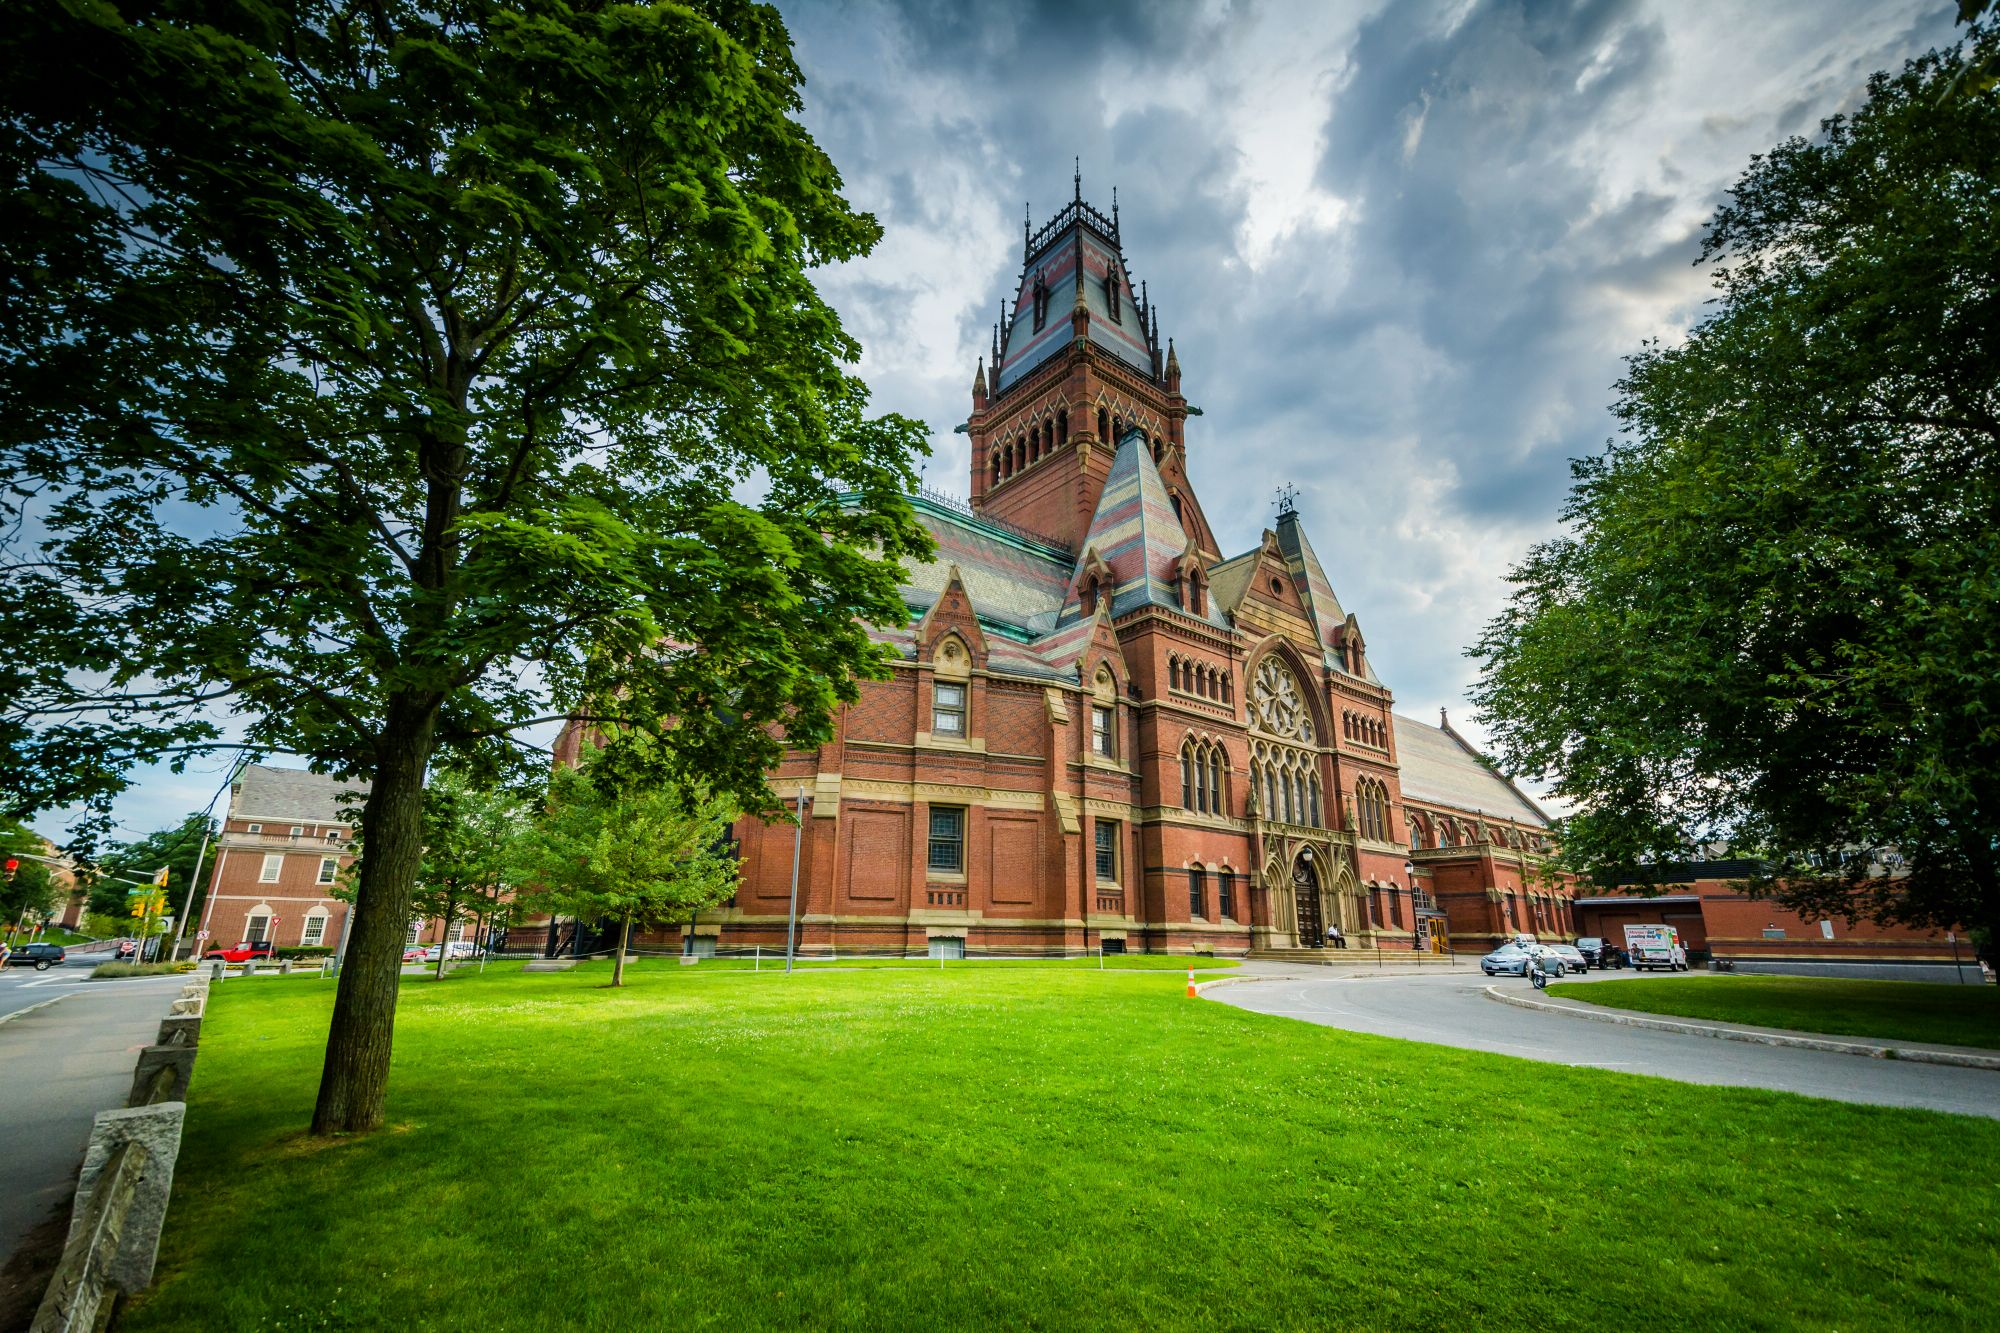 the harvard university Harvard university is regarded as the oldest and one of the most prestigious universities in the harvard university massachusetts hall, cambridge, ma 2138, united states | (617)-495-1000.